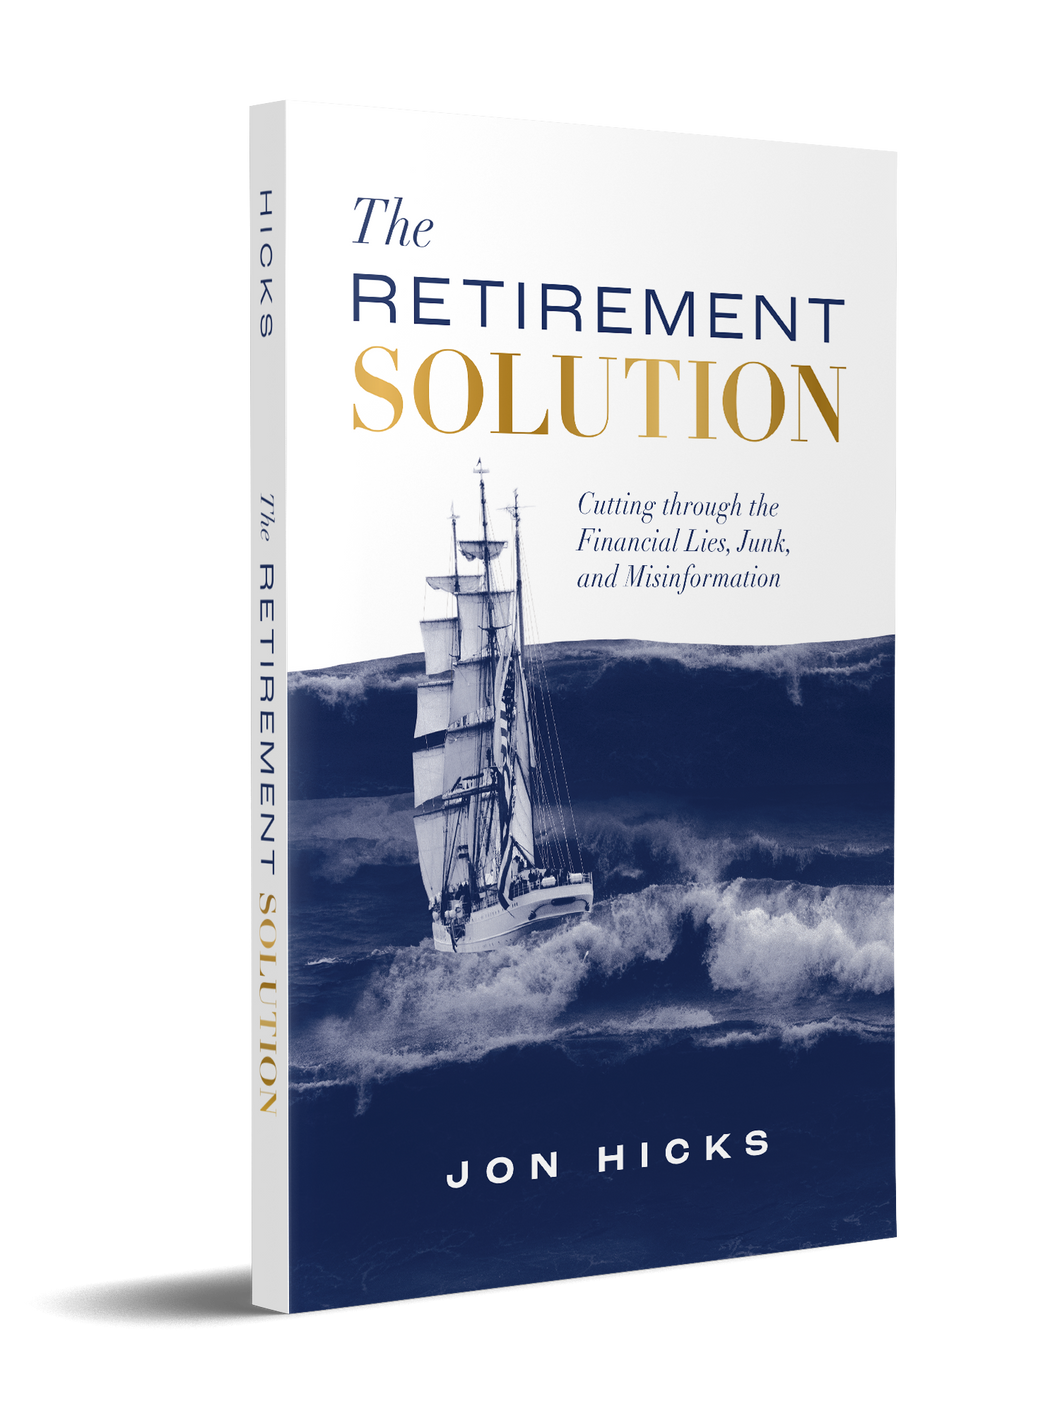 The Retirement Solution: Cutting Through the Financial Lies, Junk, and Misinformation